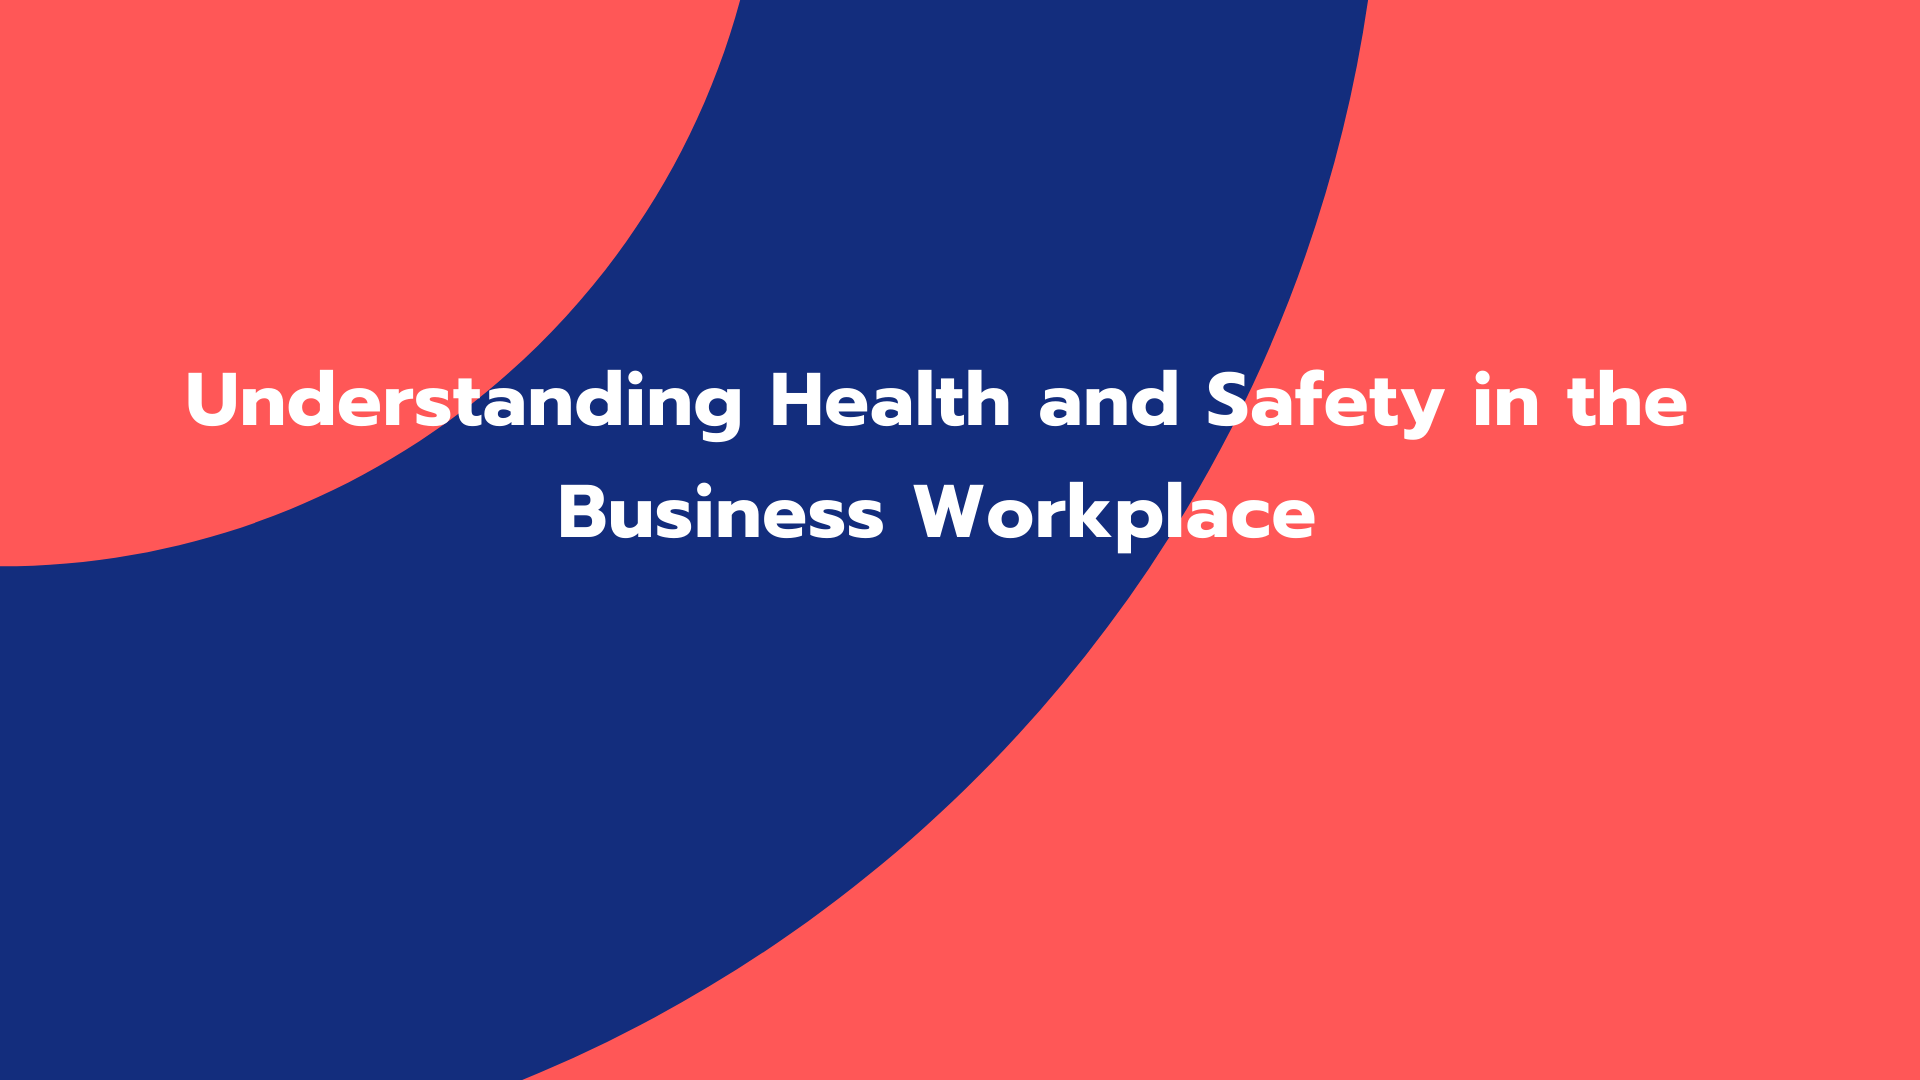 Understanding Health and Safety in the Business Workplace with ASDA